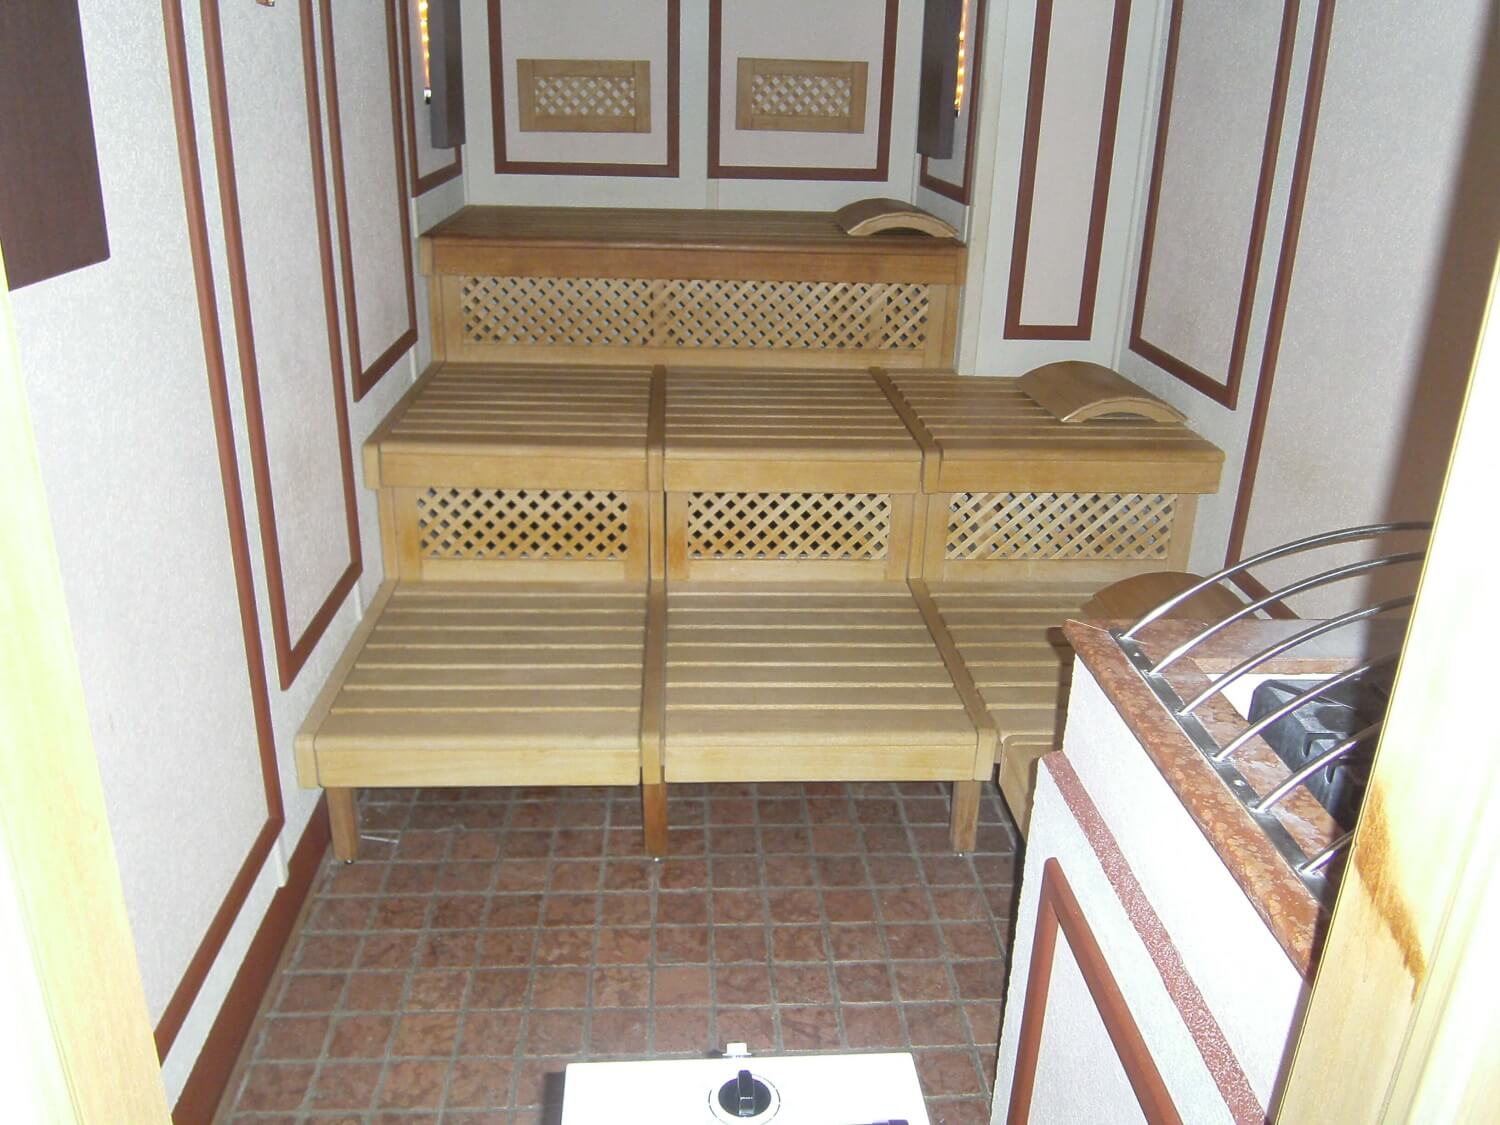 Sauna disinfection method